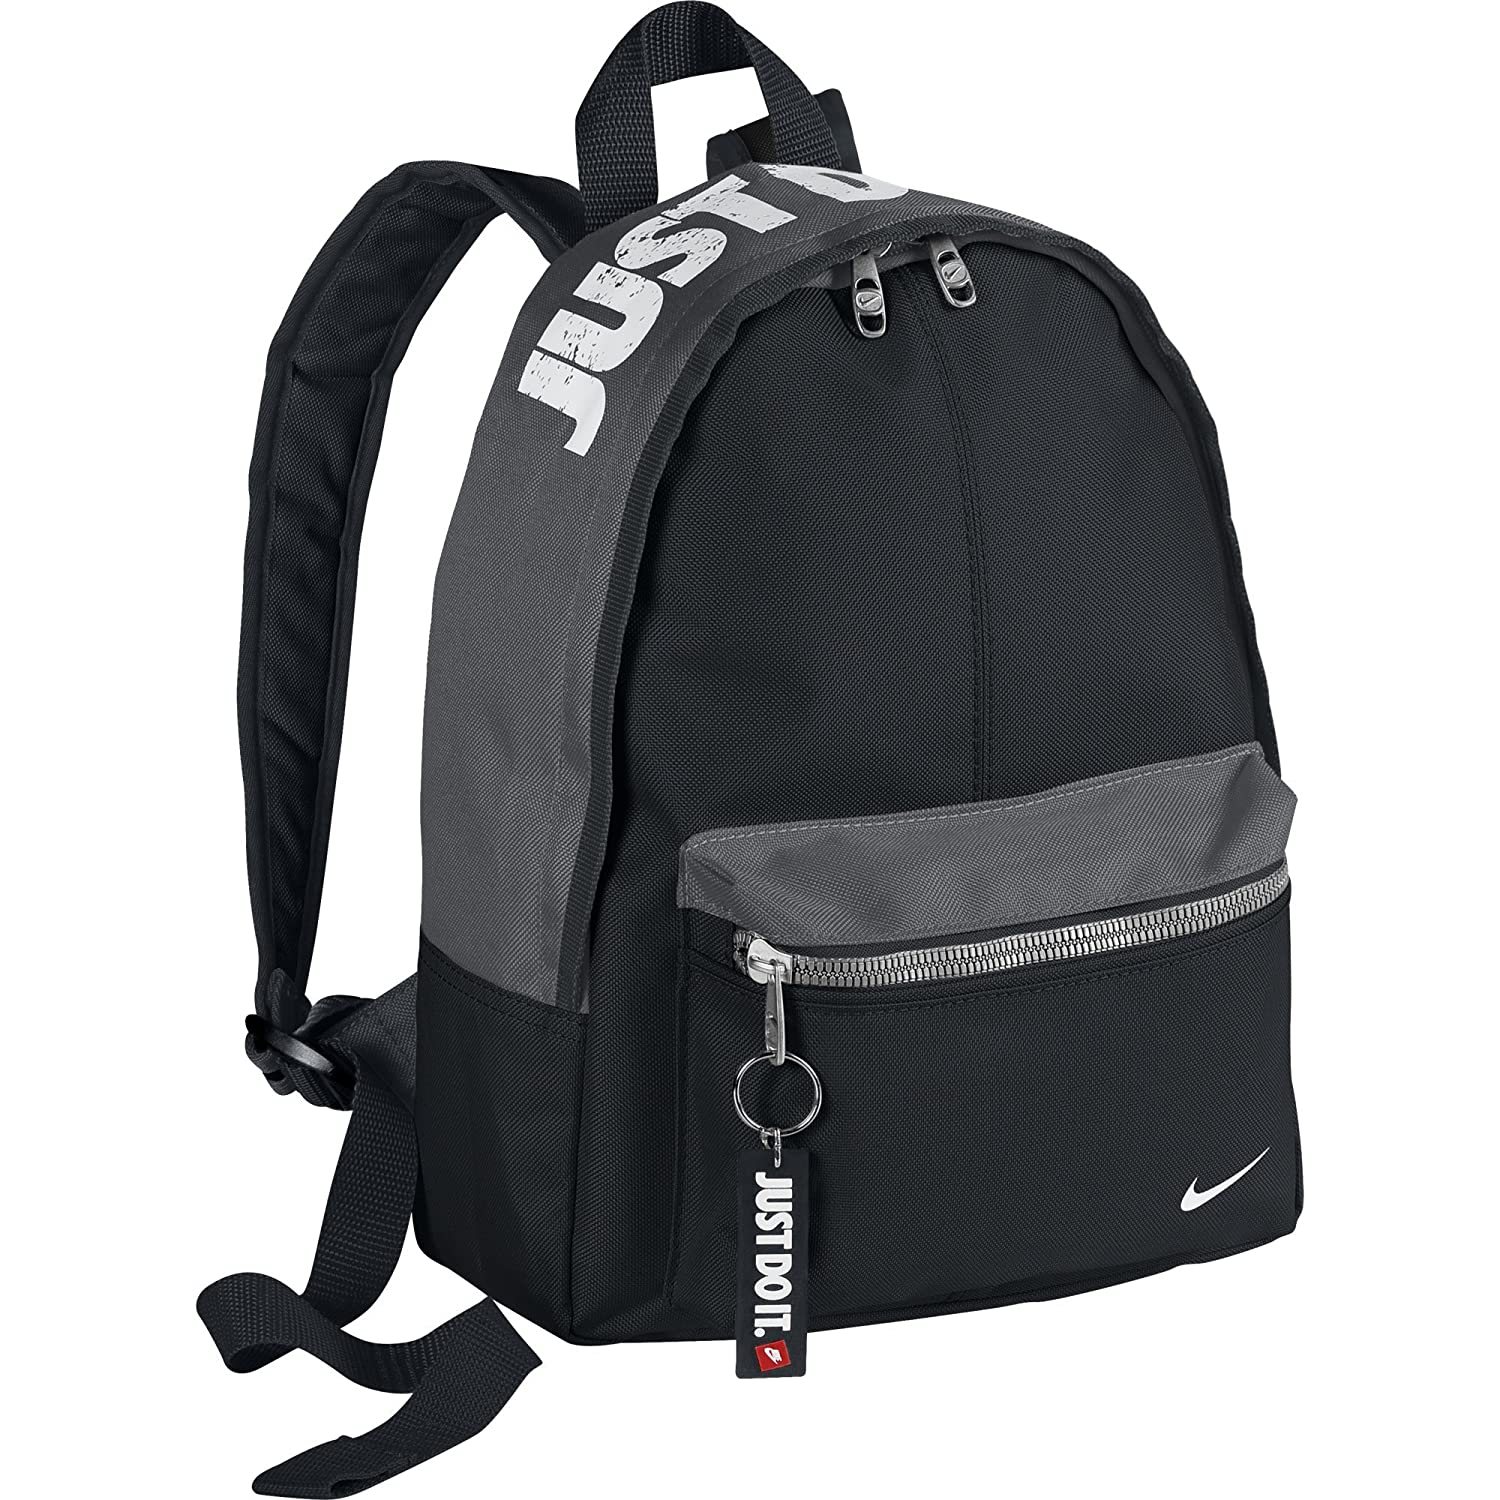 Cross-border:- Amazon Prime Users:- Nike Kid's Young Athletes Classic Backpack low price